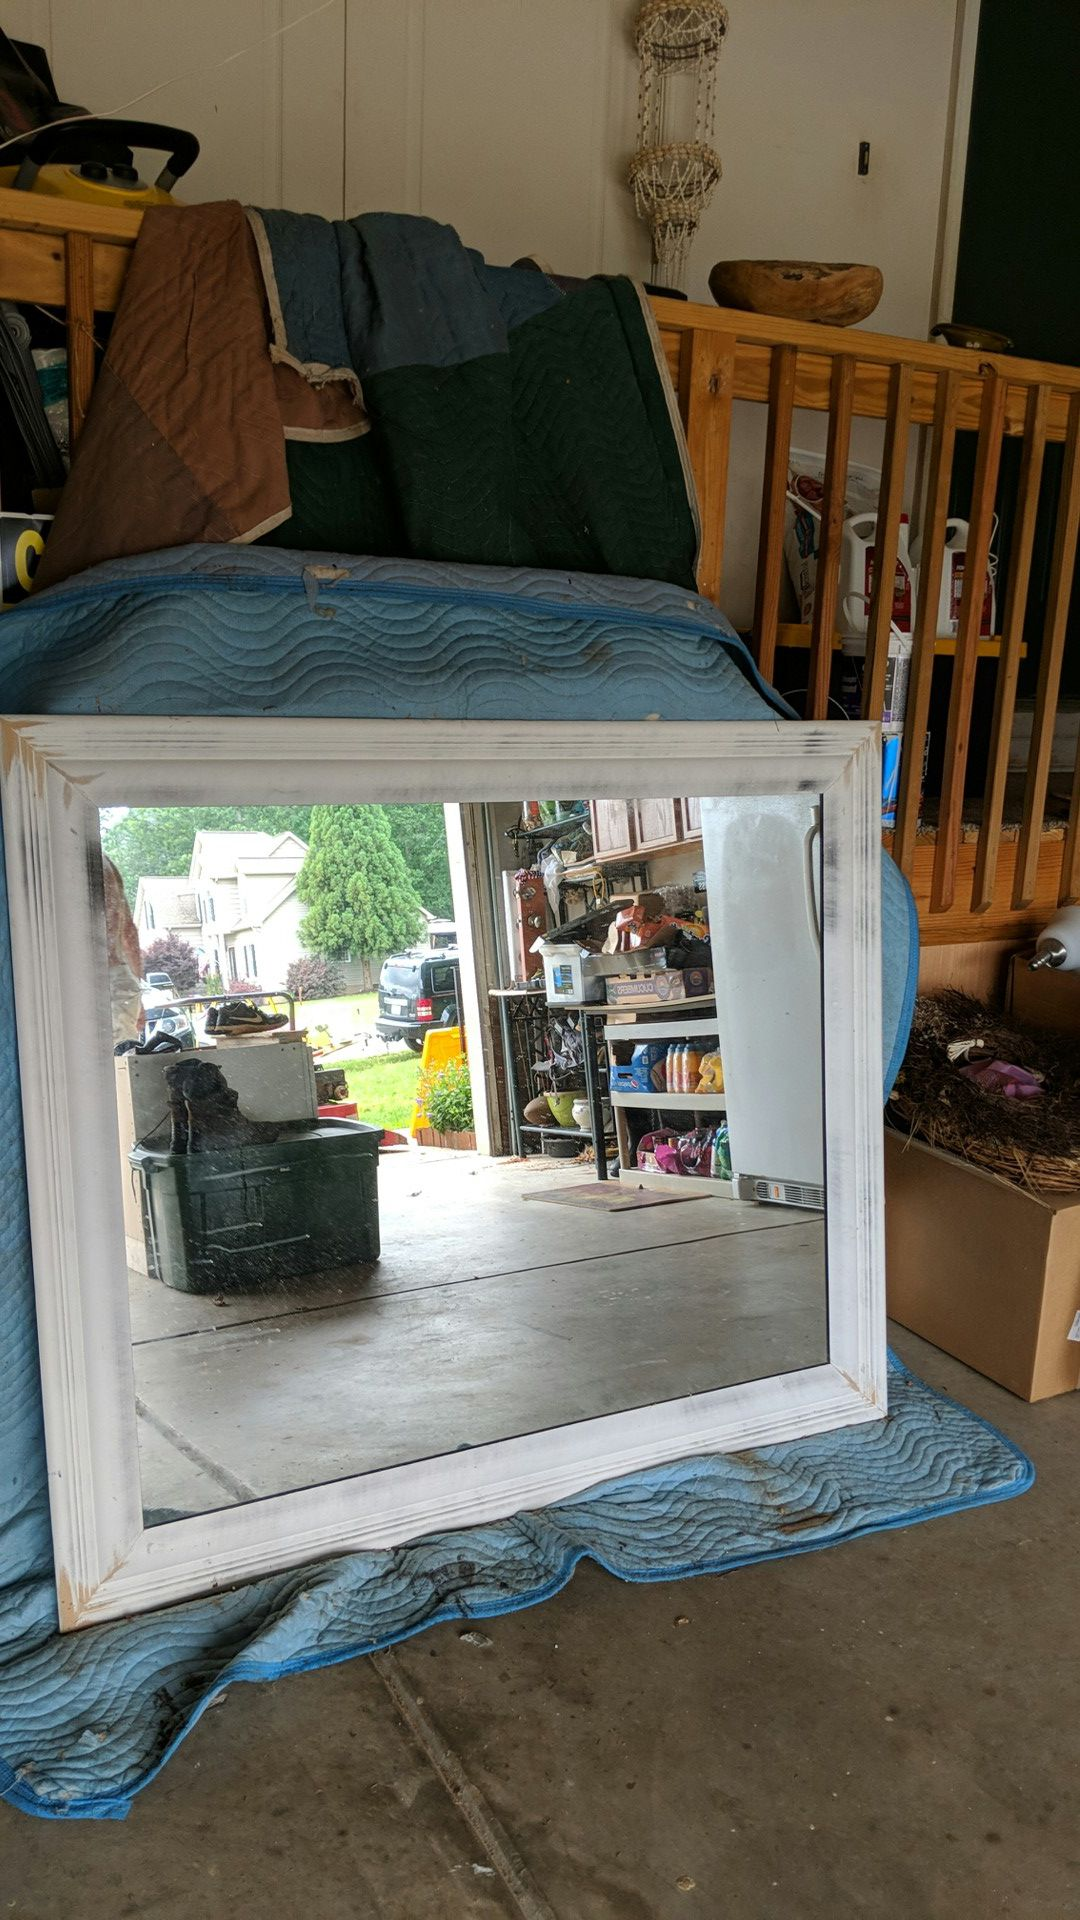 Mirror clear custom frame made primed and ready to paint any color you want